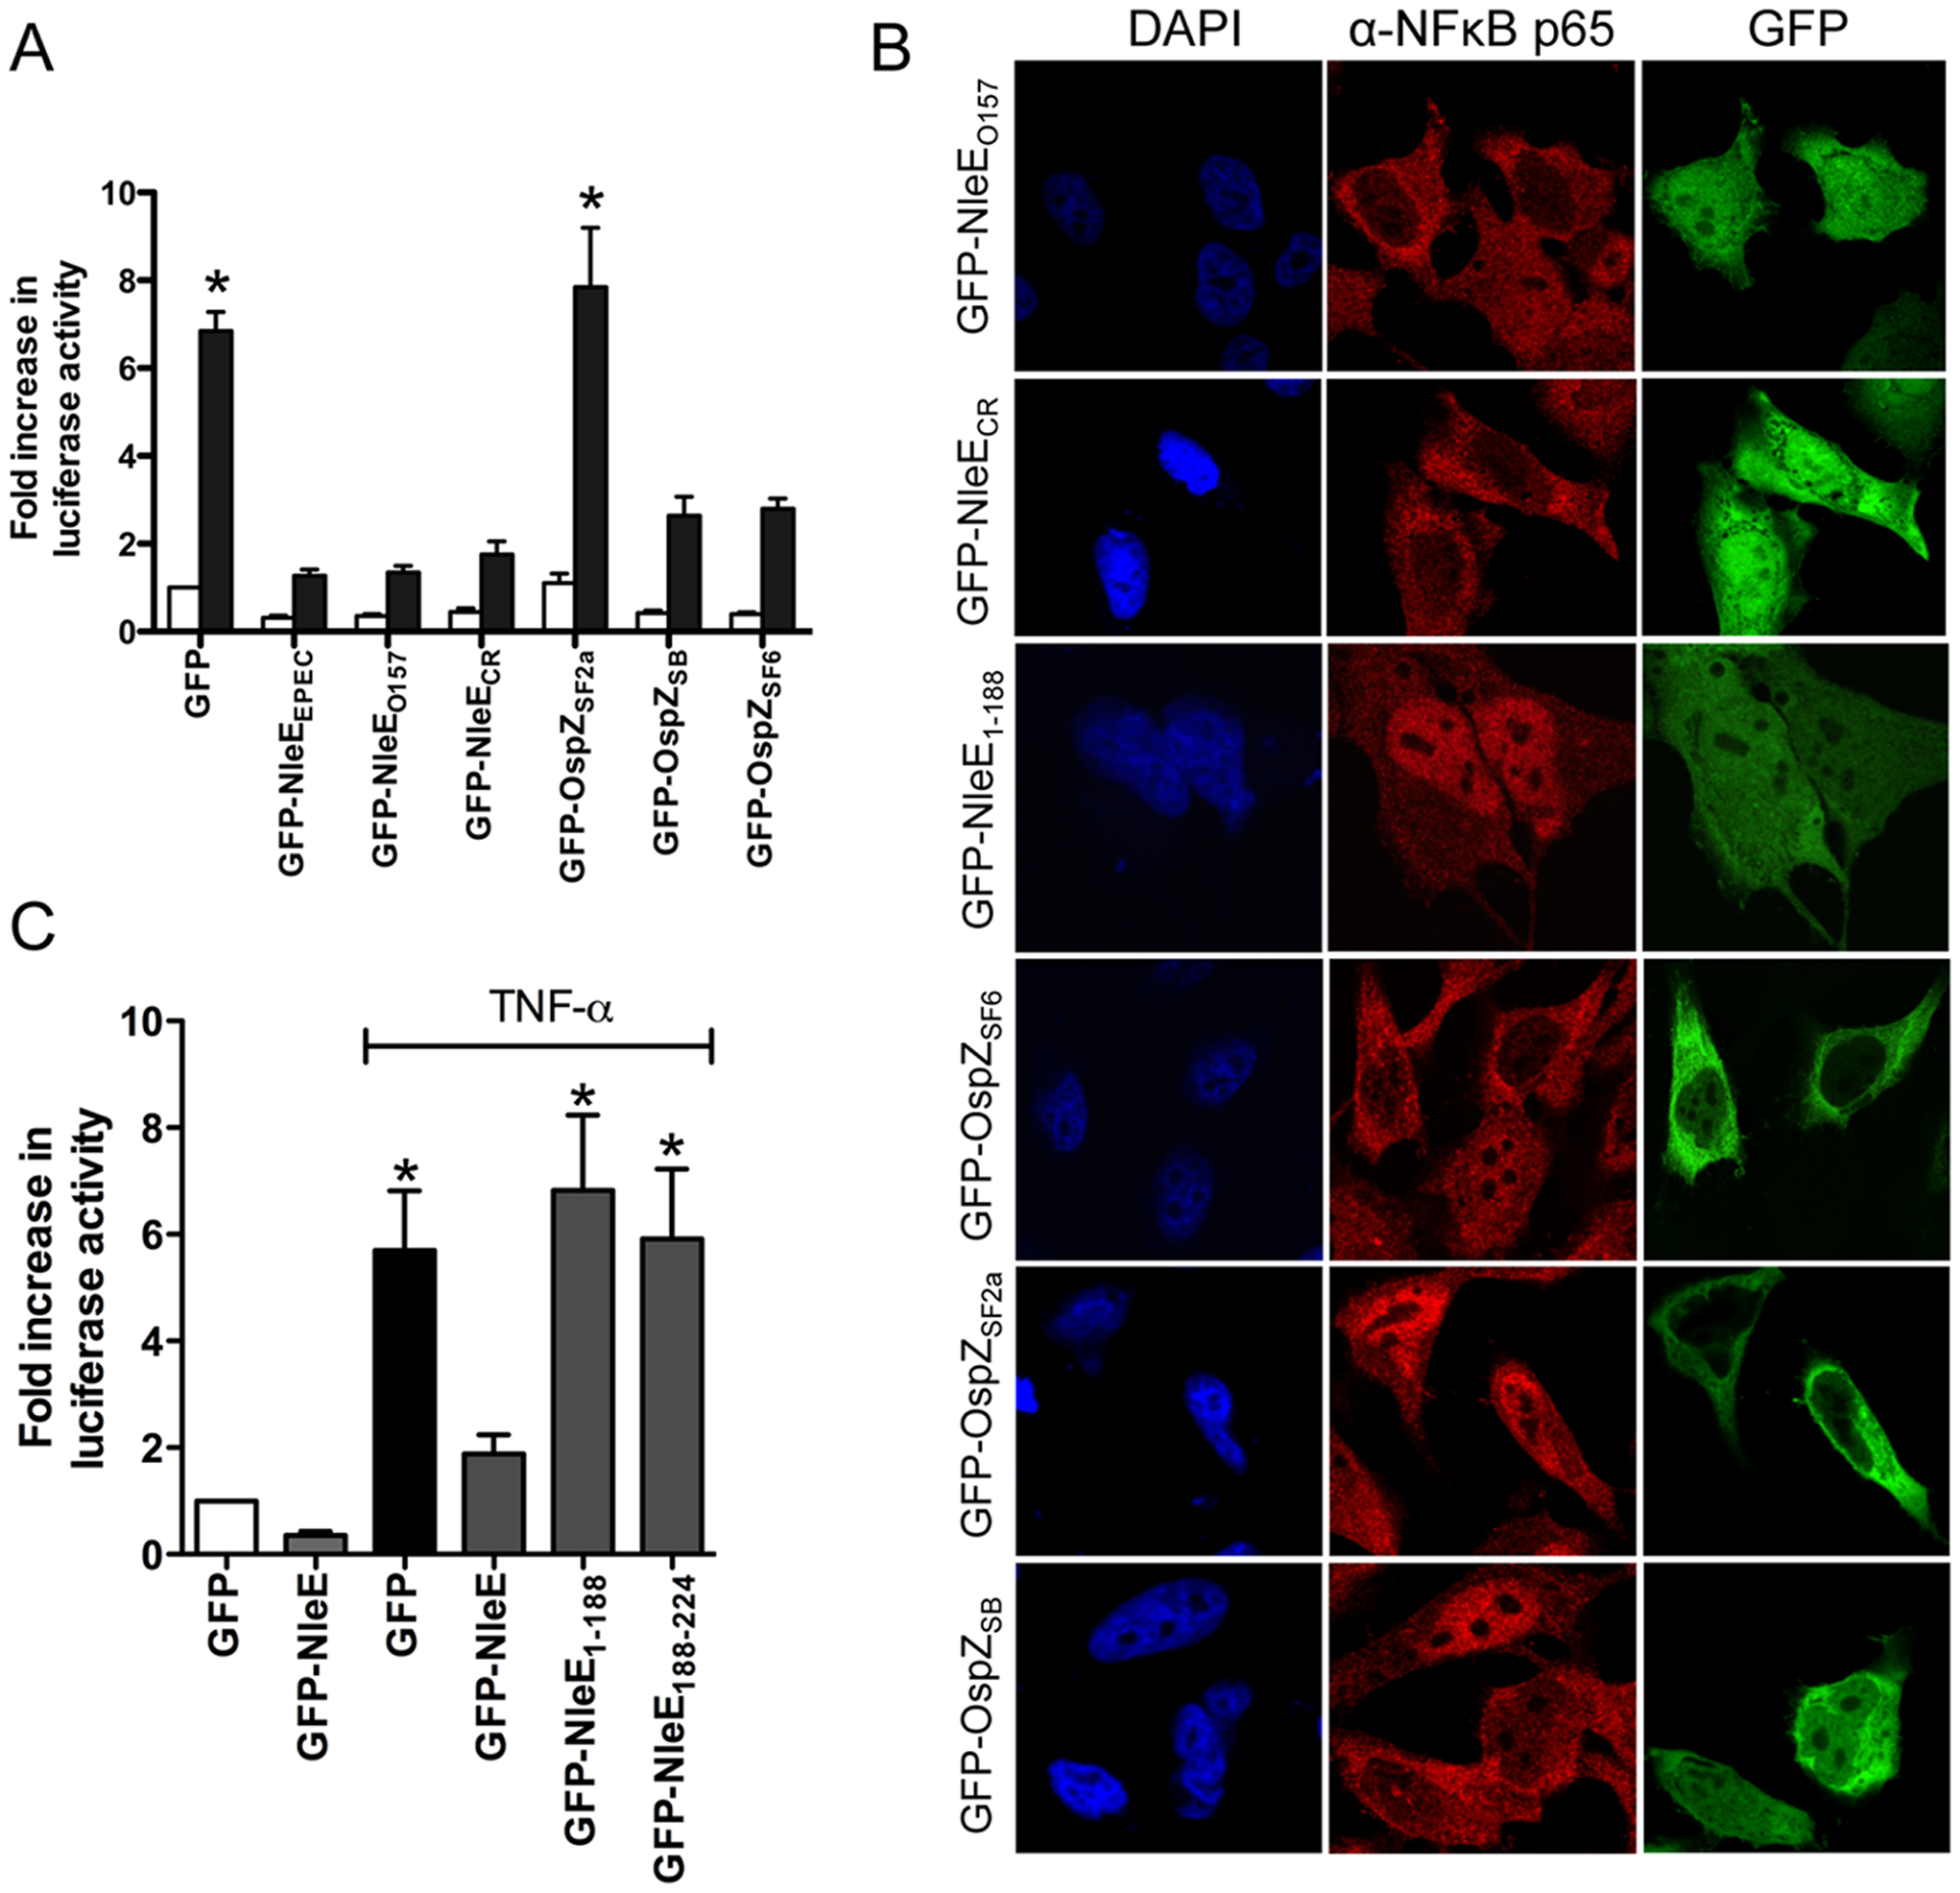 Effect of NleE and OspZ homologues on NF-κB activation.